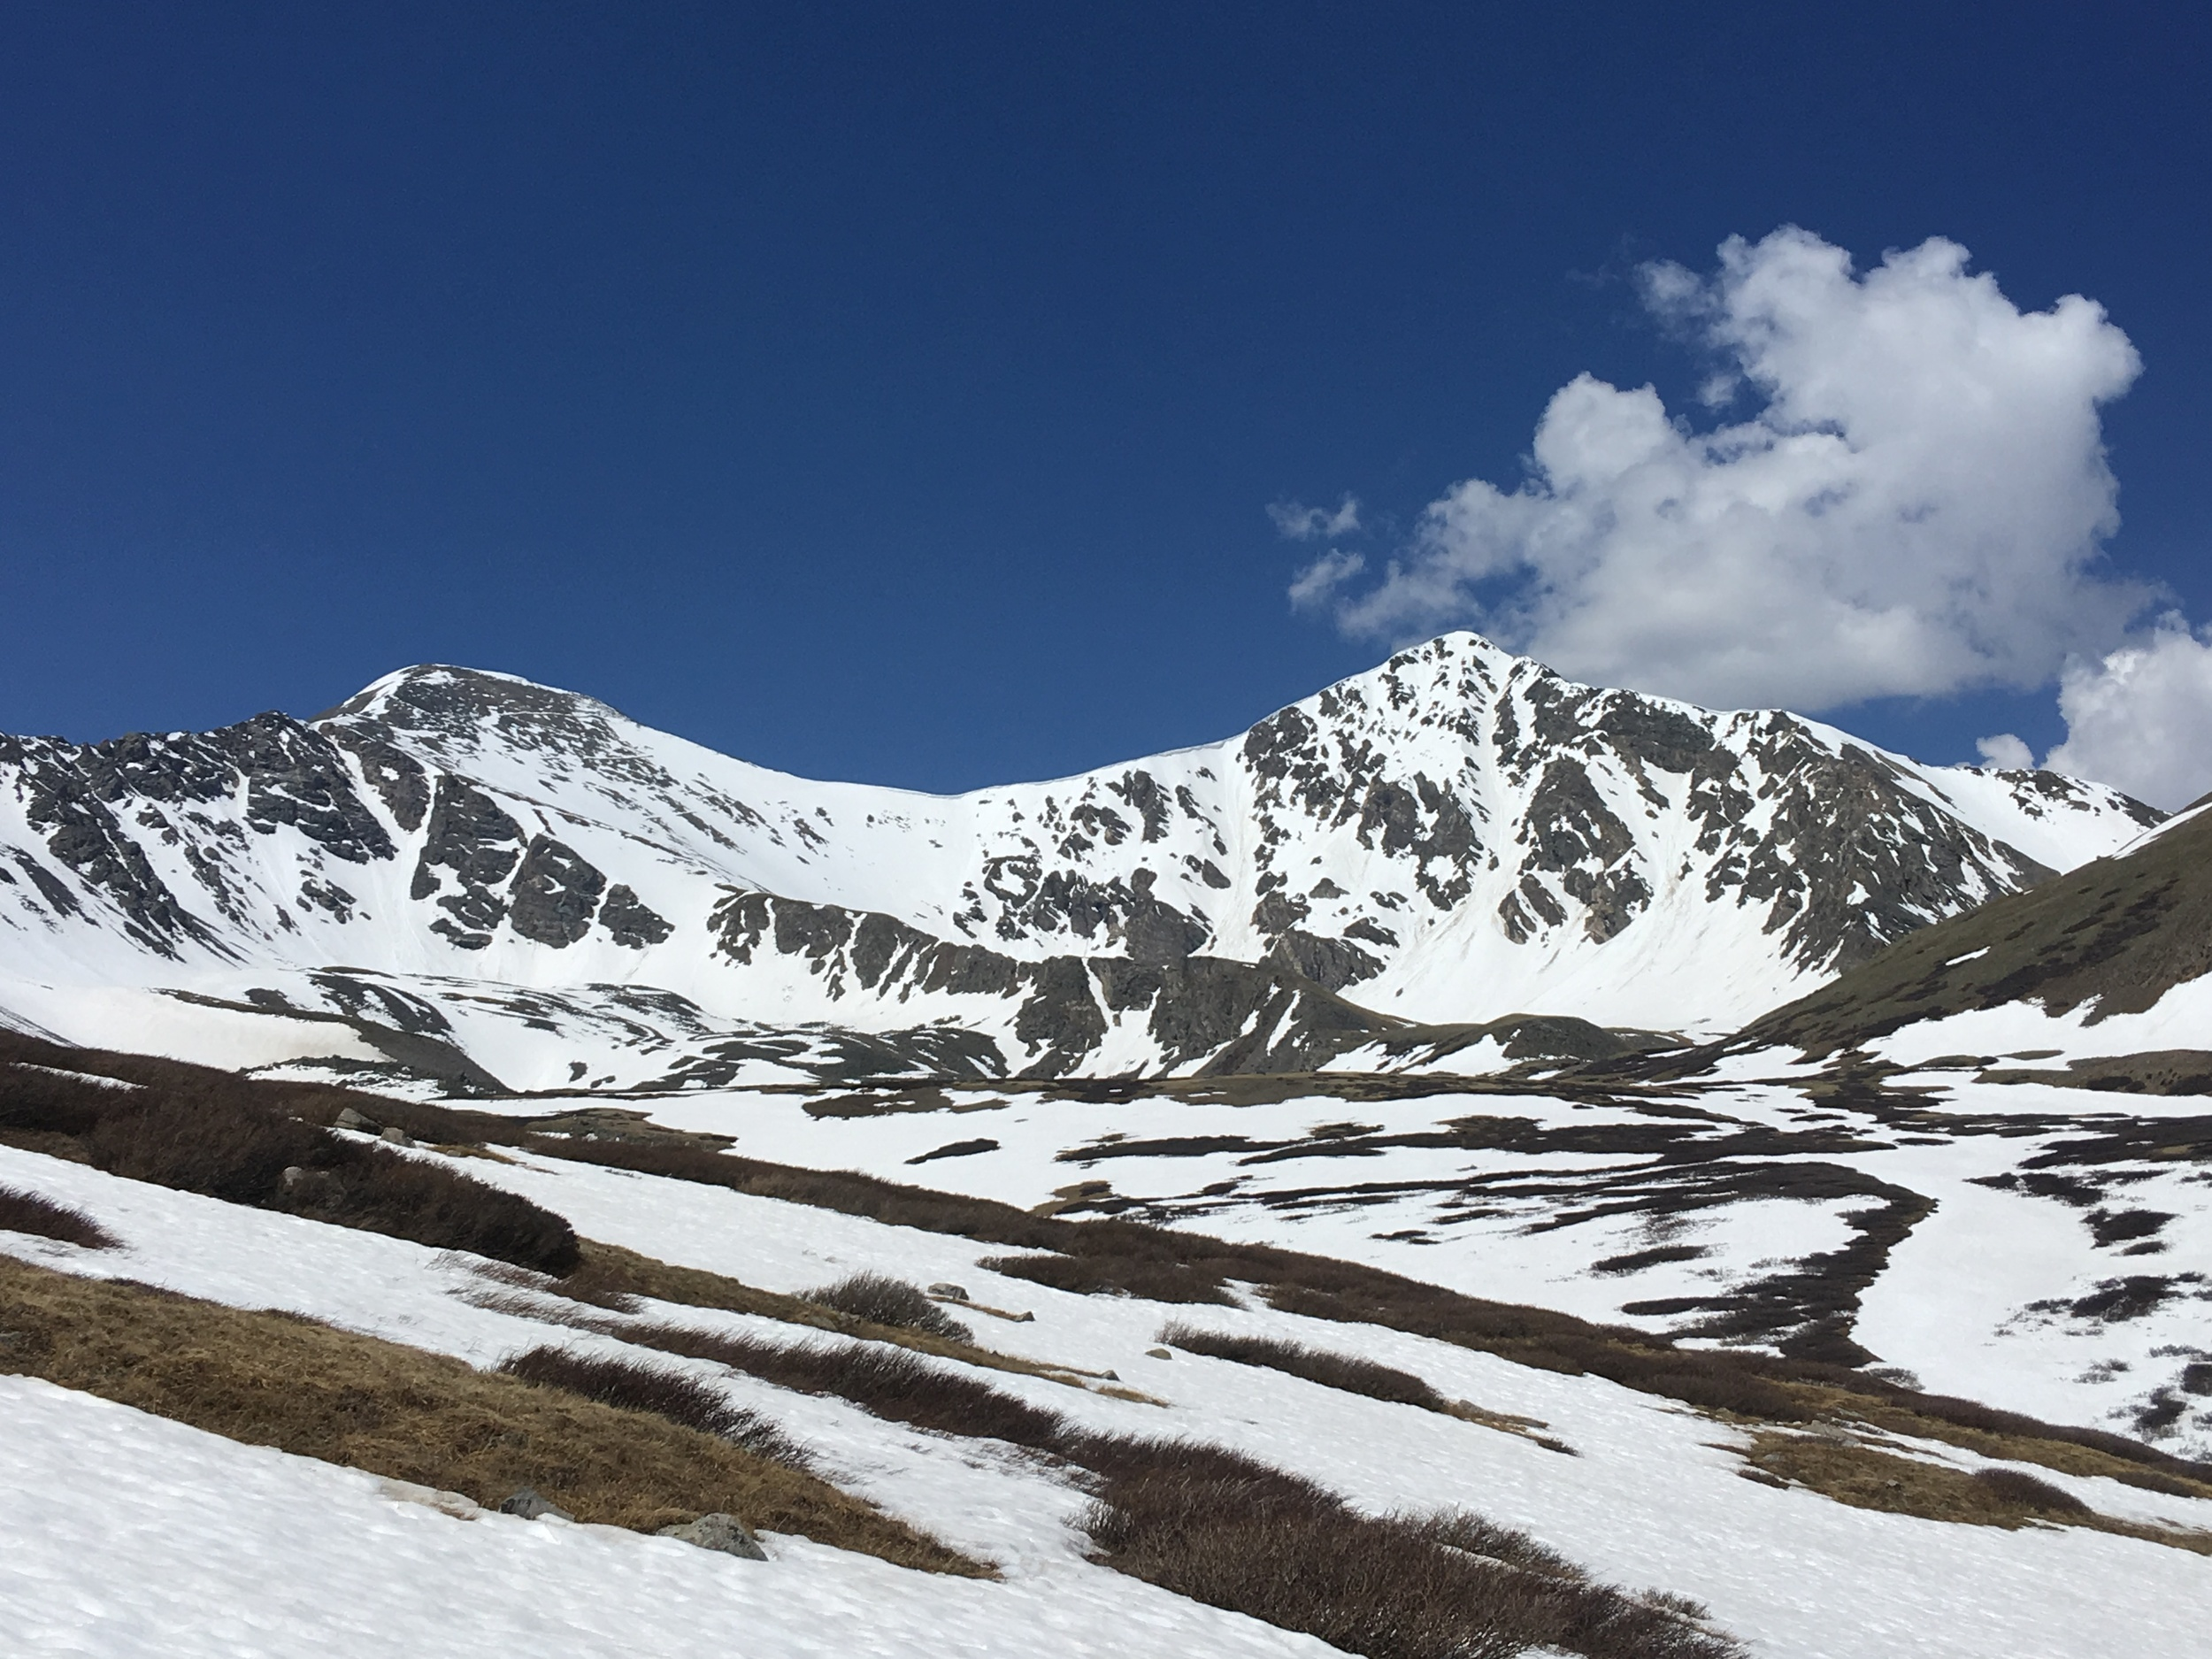 Grays (left) and Torreys Peak